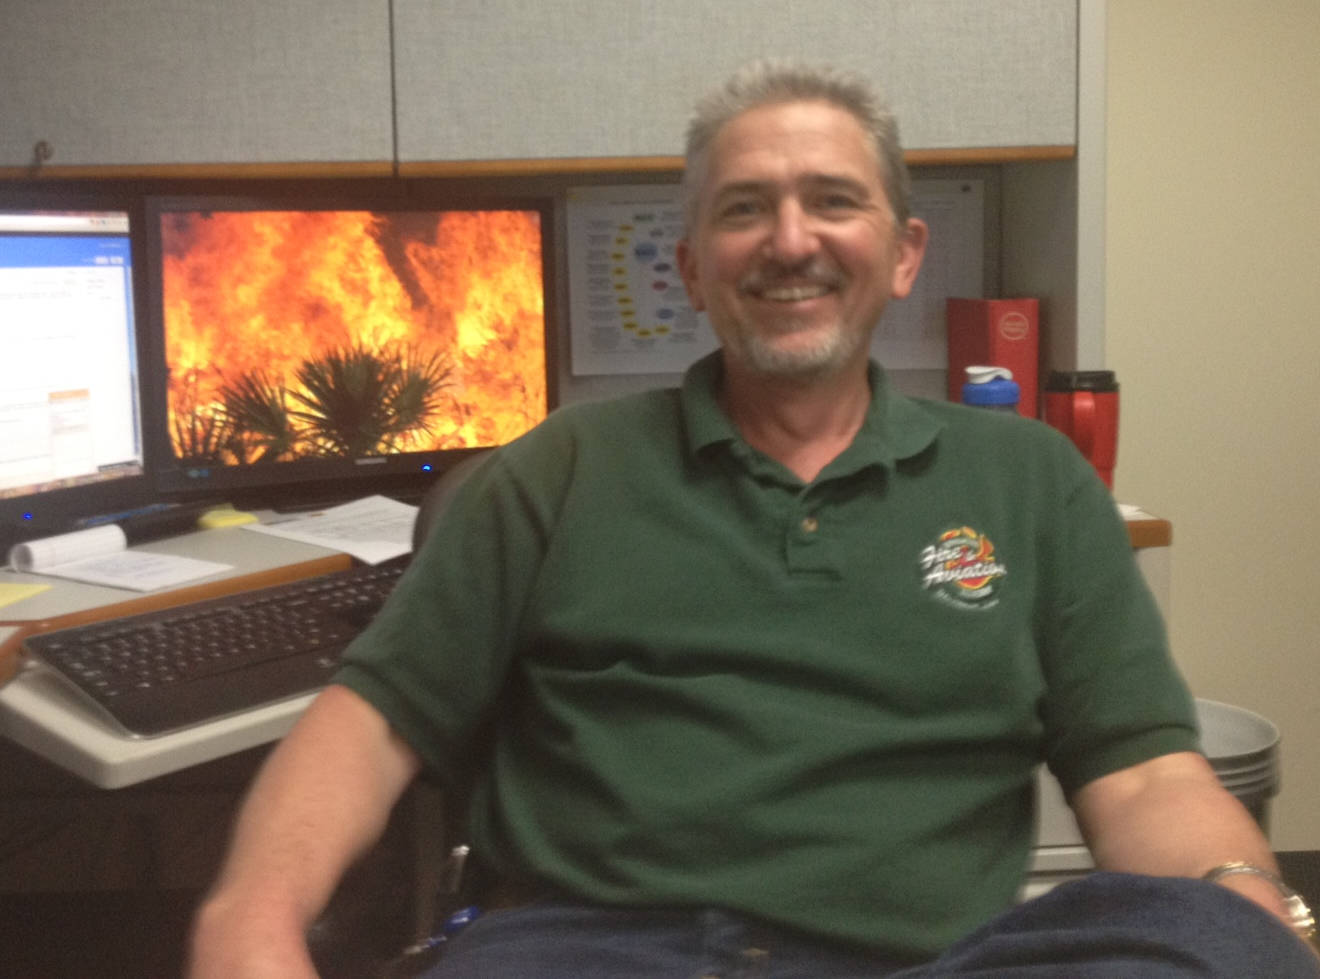 A man in a green shirt sits in front of a computer with flames in the background